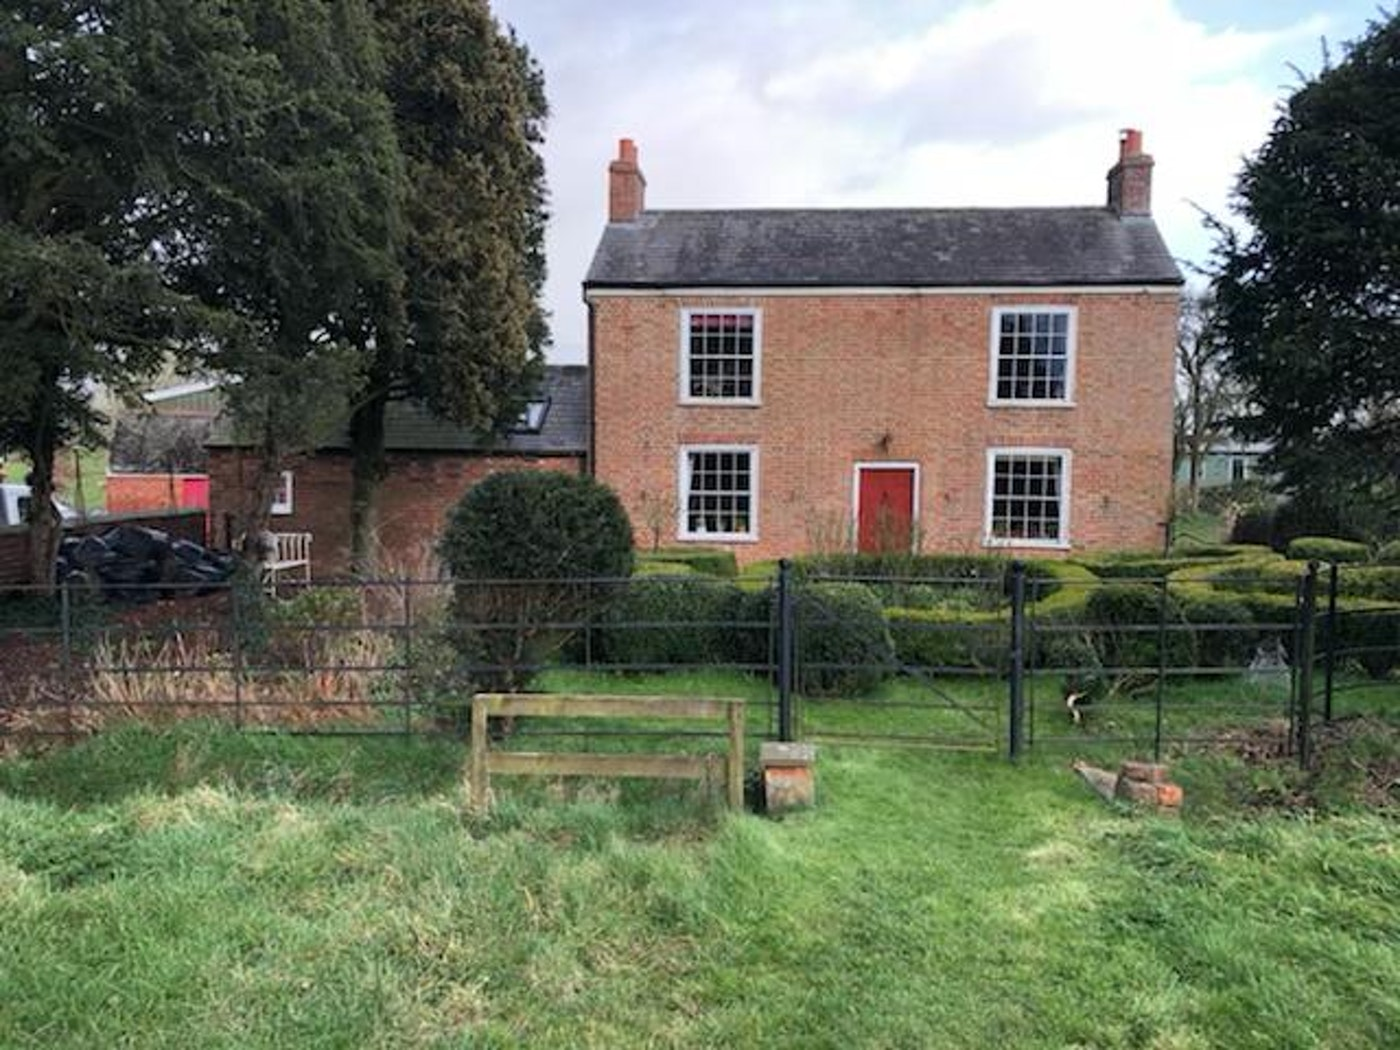 Orchard farm in Leicester, home to Urban Front's first tree planting project